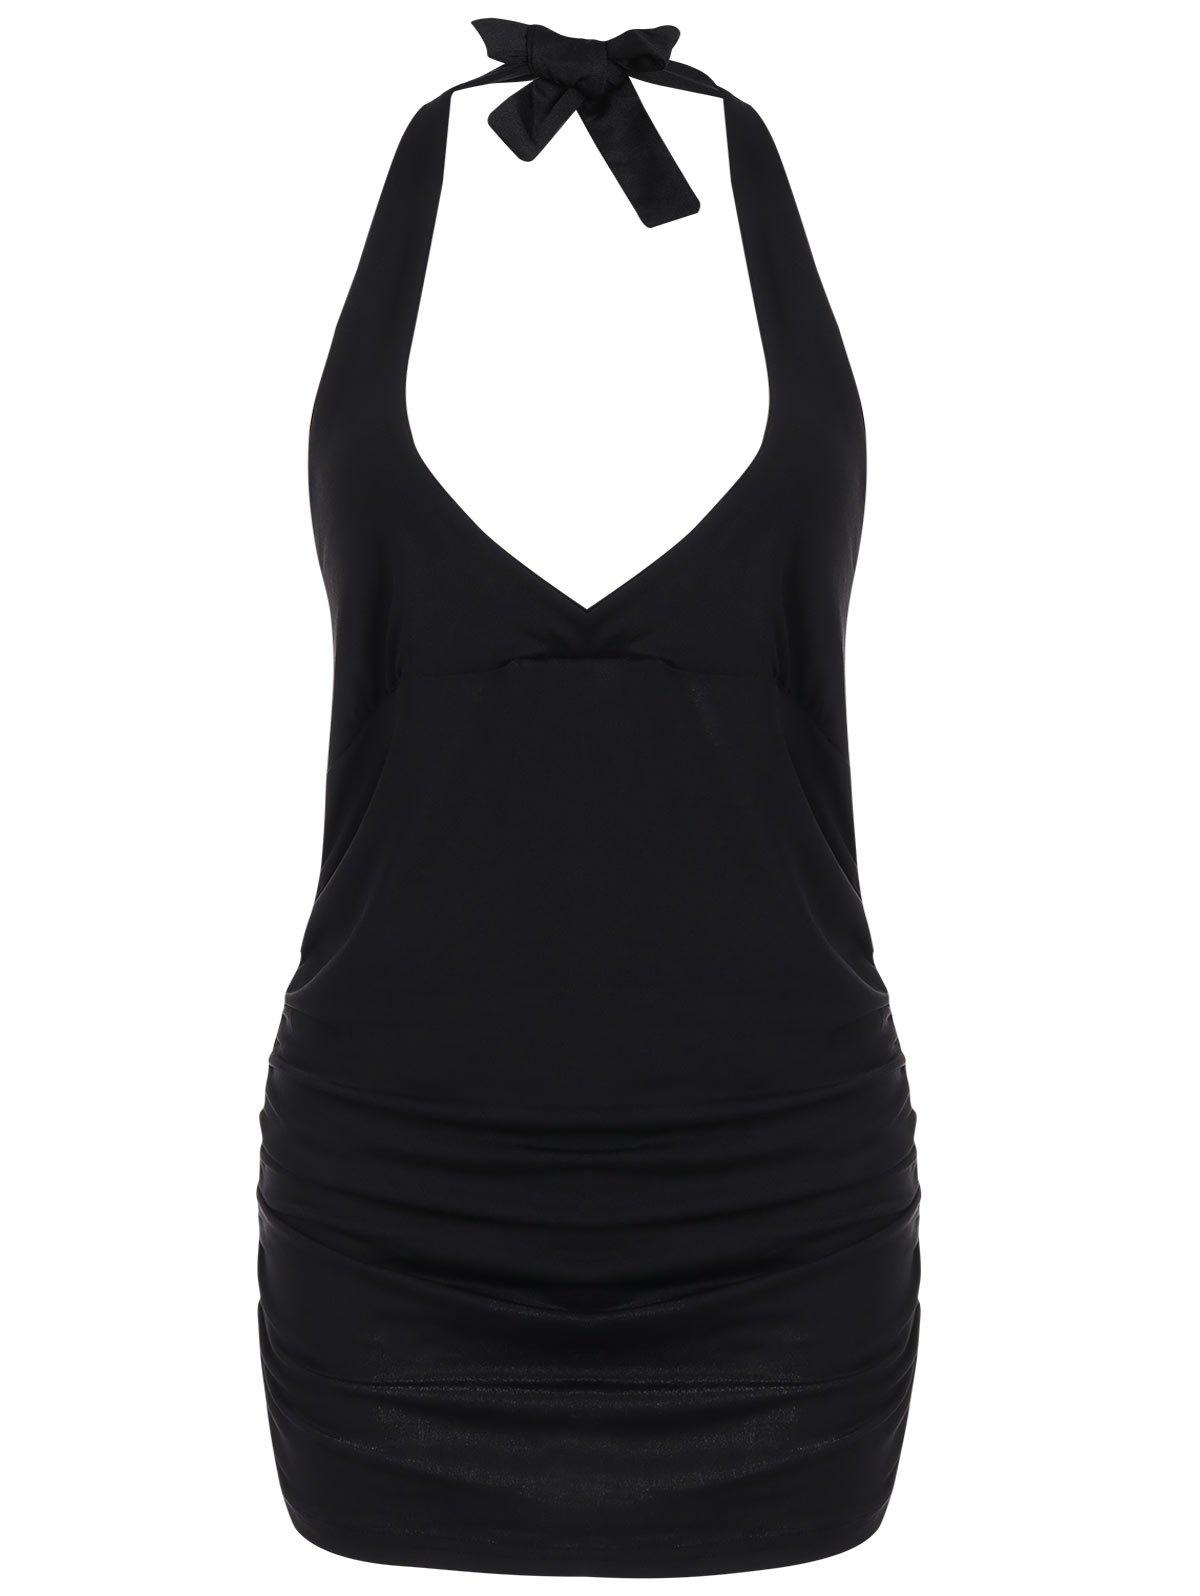 Halter Low Cut Backless Camisole - Noir XL